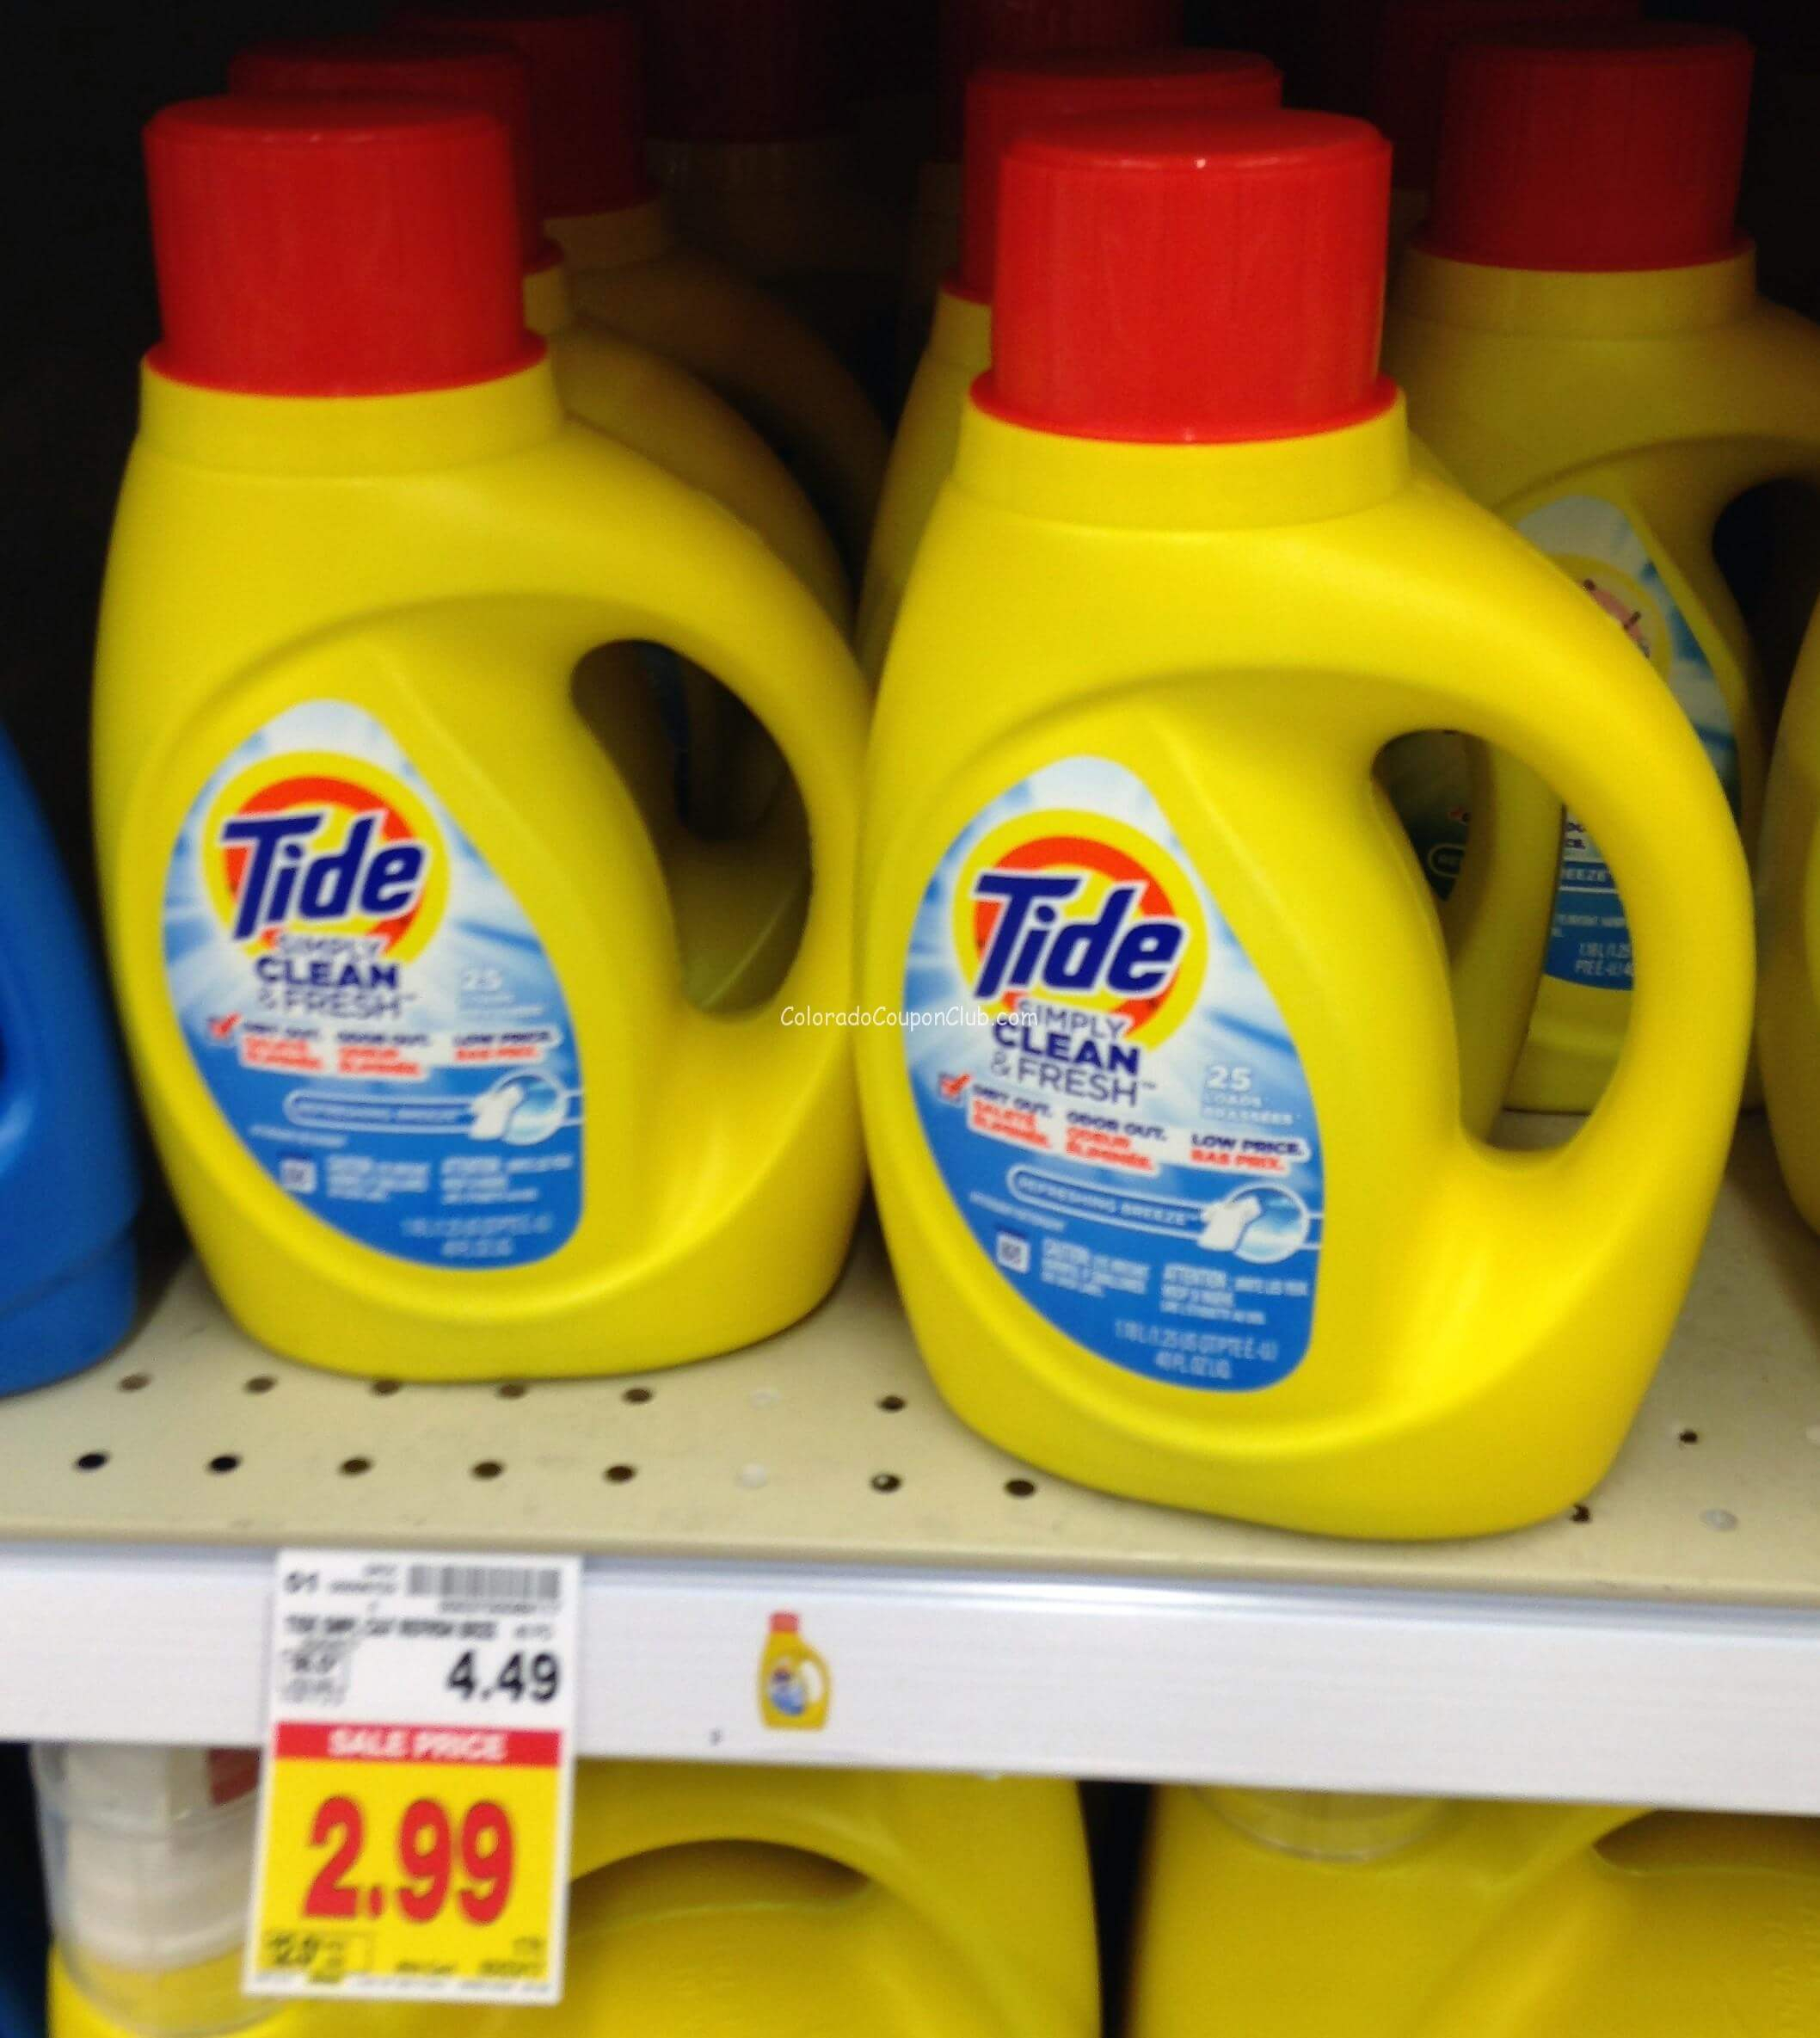 Tide Simply Detergent, Only $2.49 At King Soopers! - Colorado Coupon - Free Printable Tide Simply Coupons